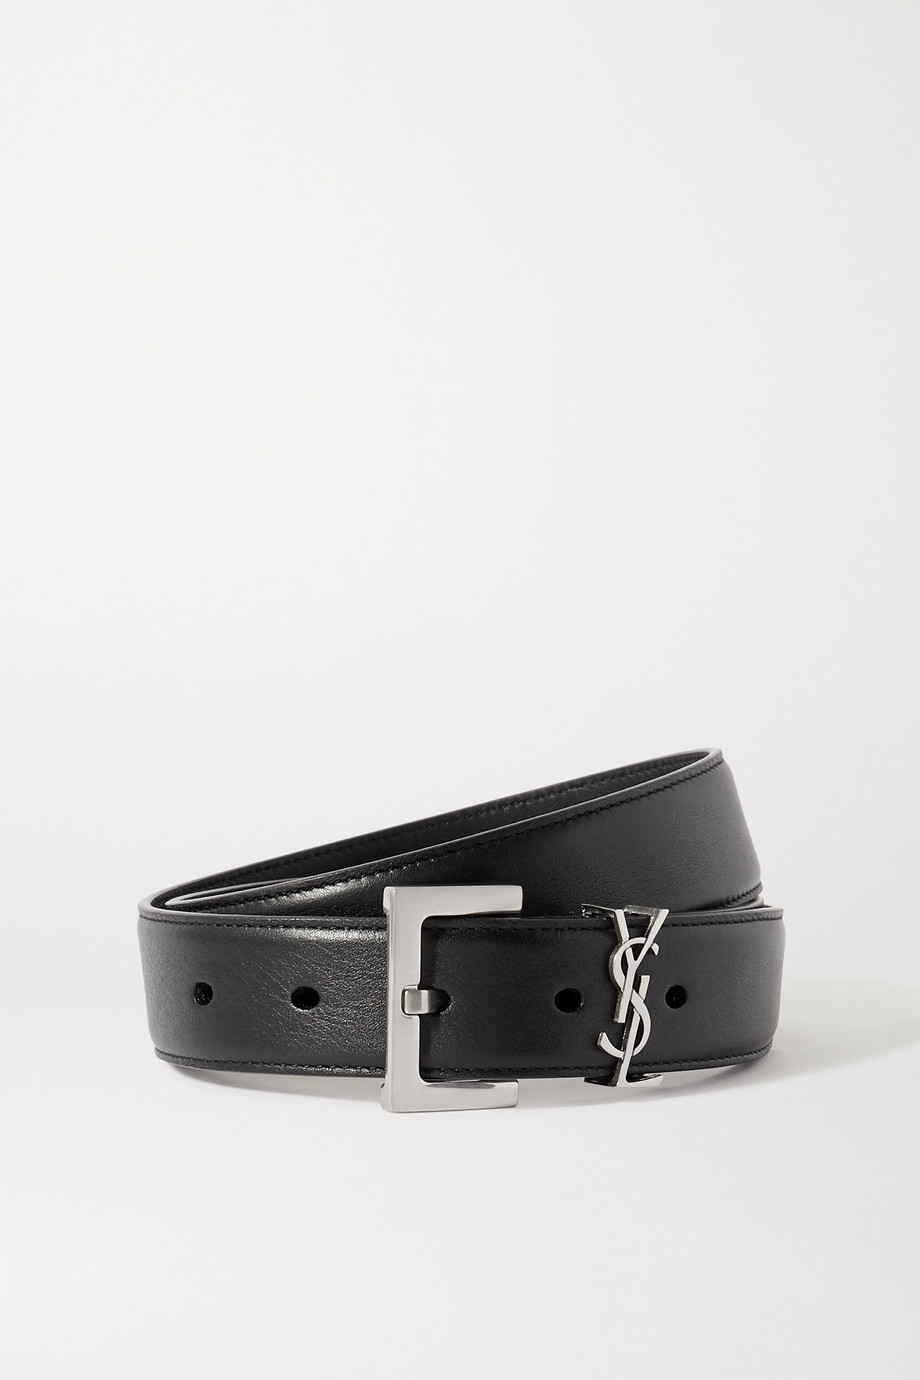 SAINT LAURENT Monogramme leather belt